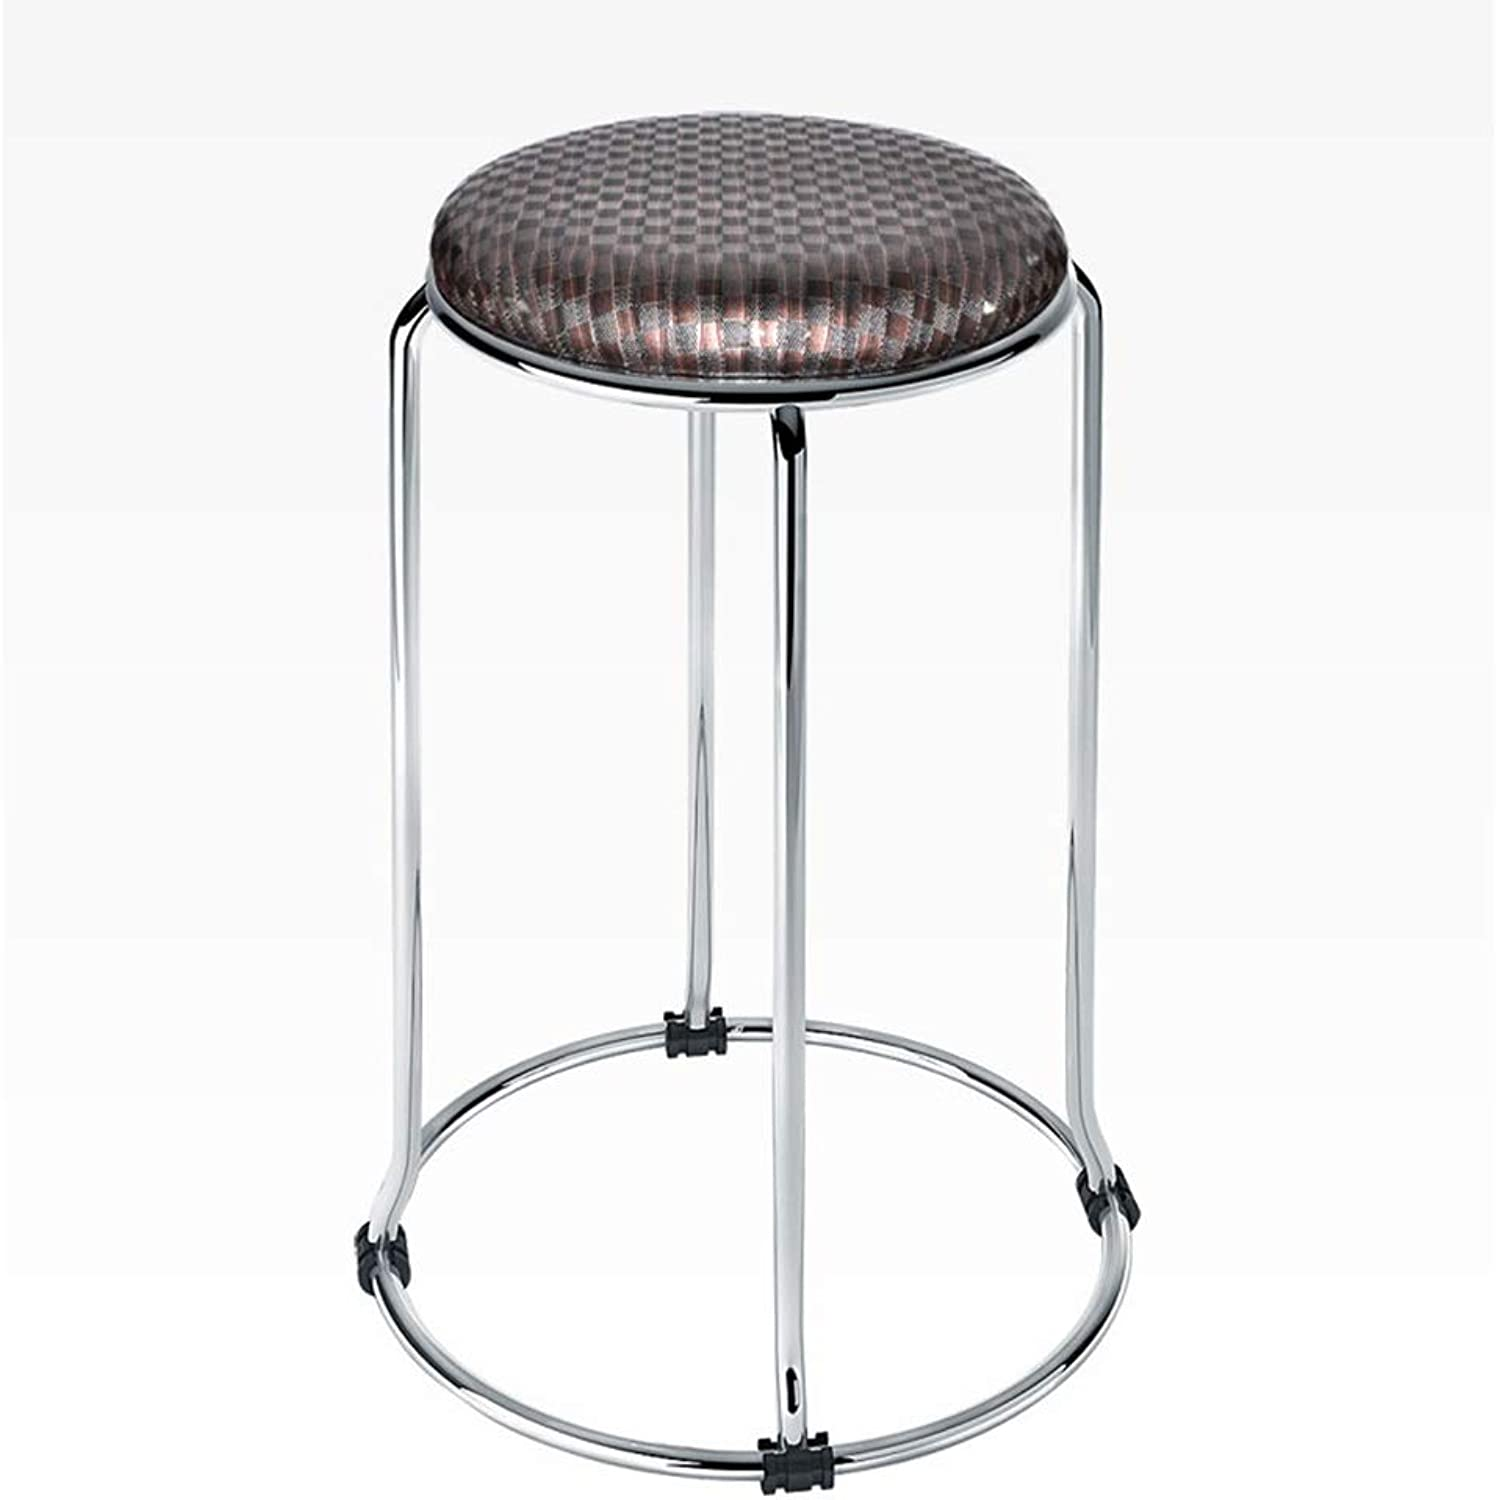 Stylish Simplicity Bar Stool Iron Art Round Retro Counter Chair Leather Seat Cafe KTV Household Sturdy Non-Slip 0525A (color   C, Size   30  57cm)